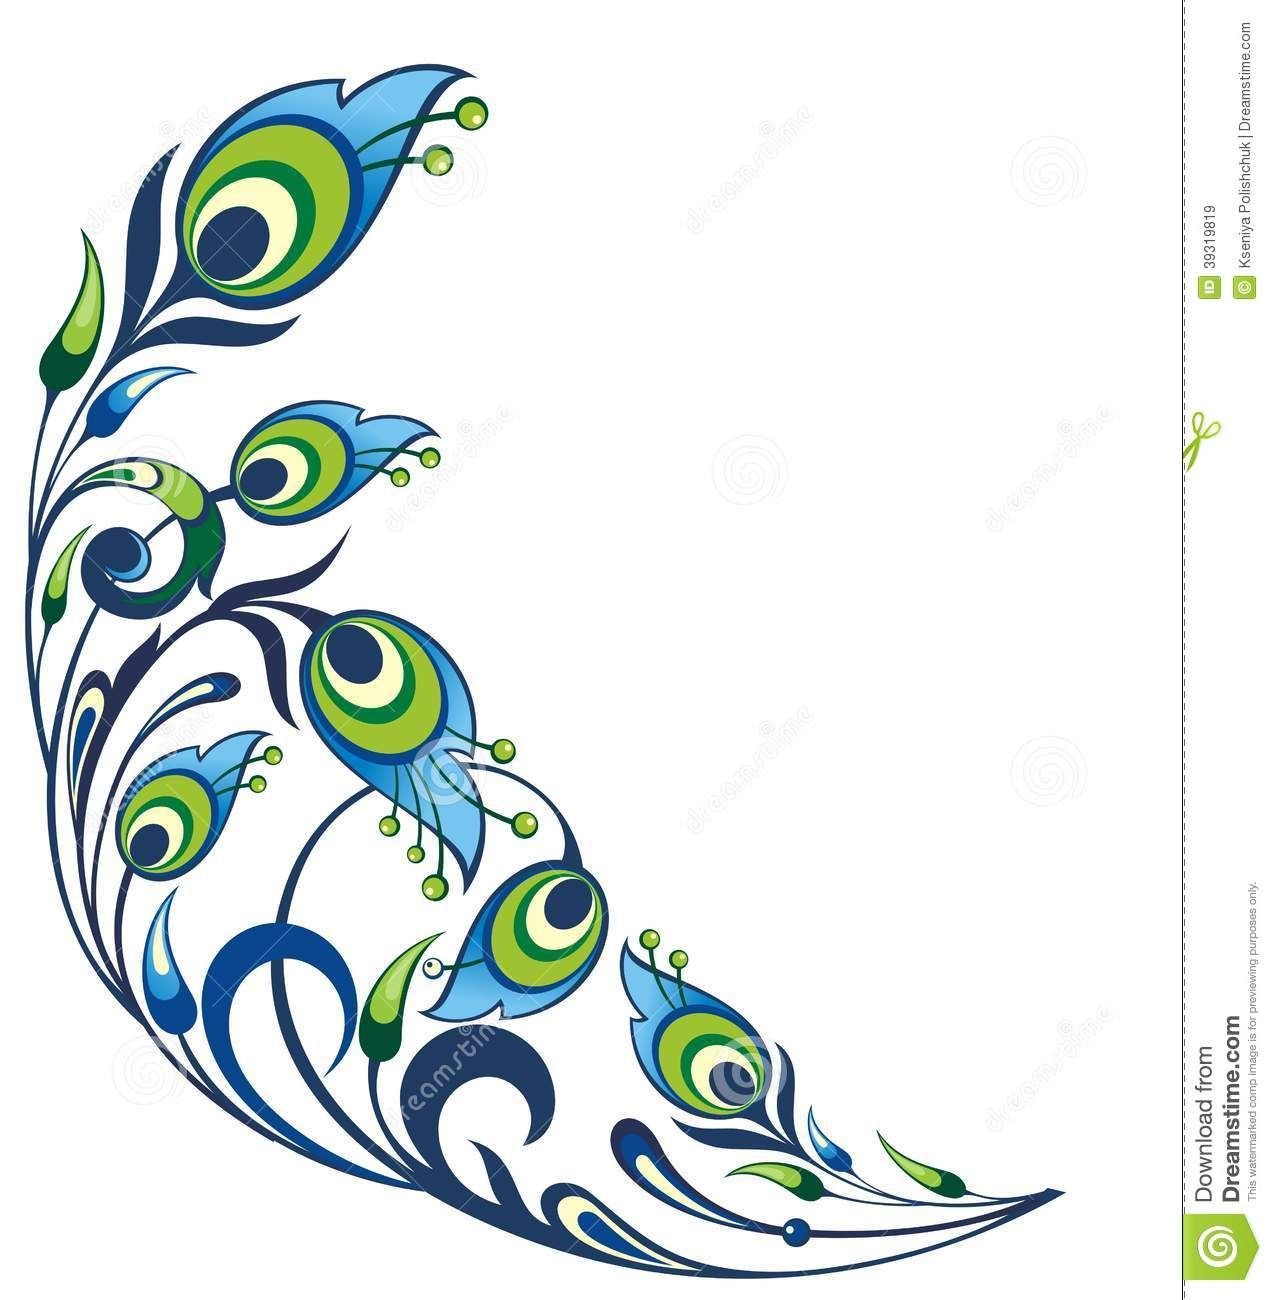 Peacock design clipart picture free Peacock feathers background Royalty Free Stock Images ... picture free